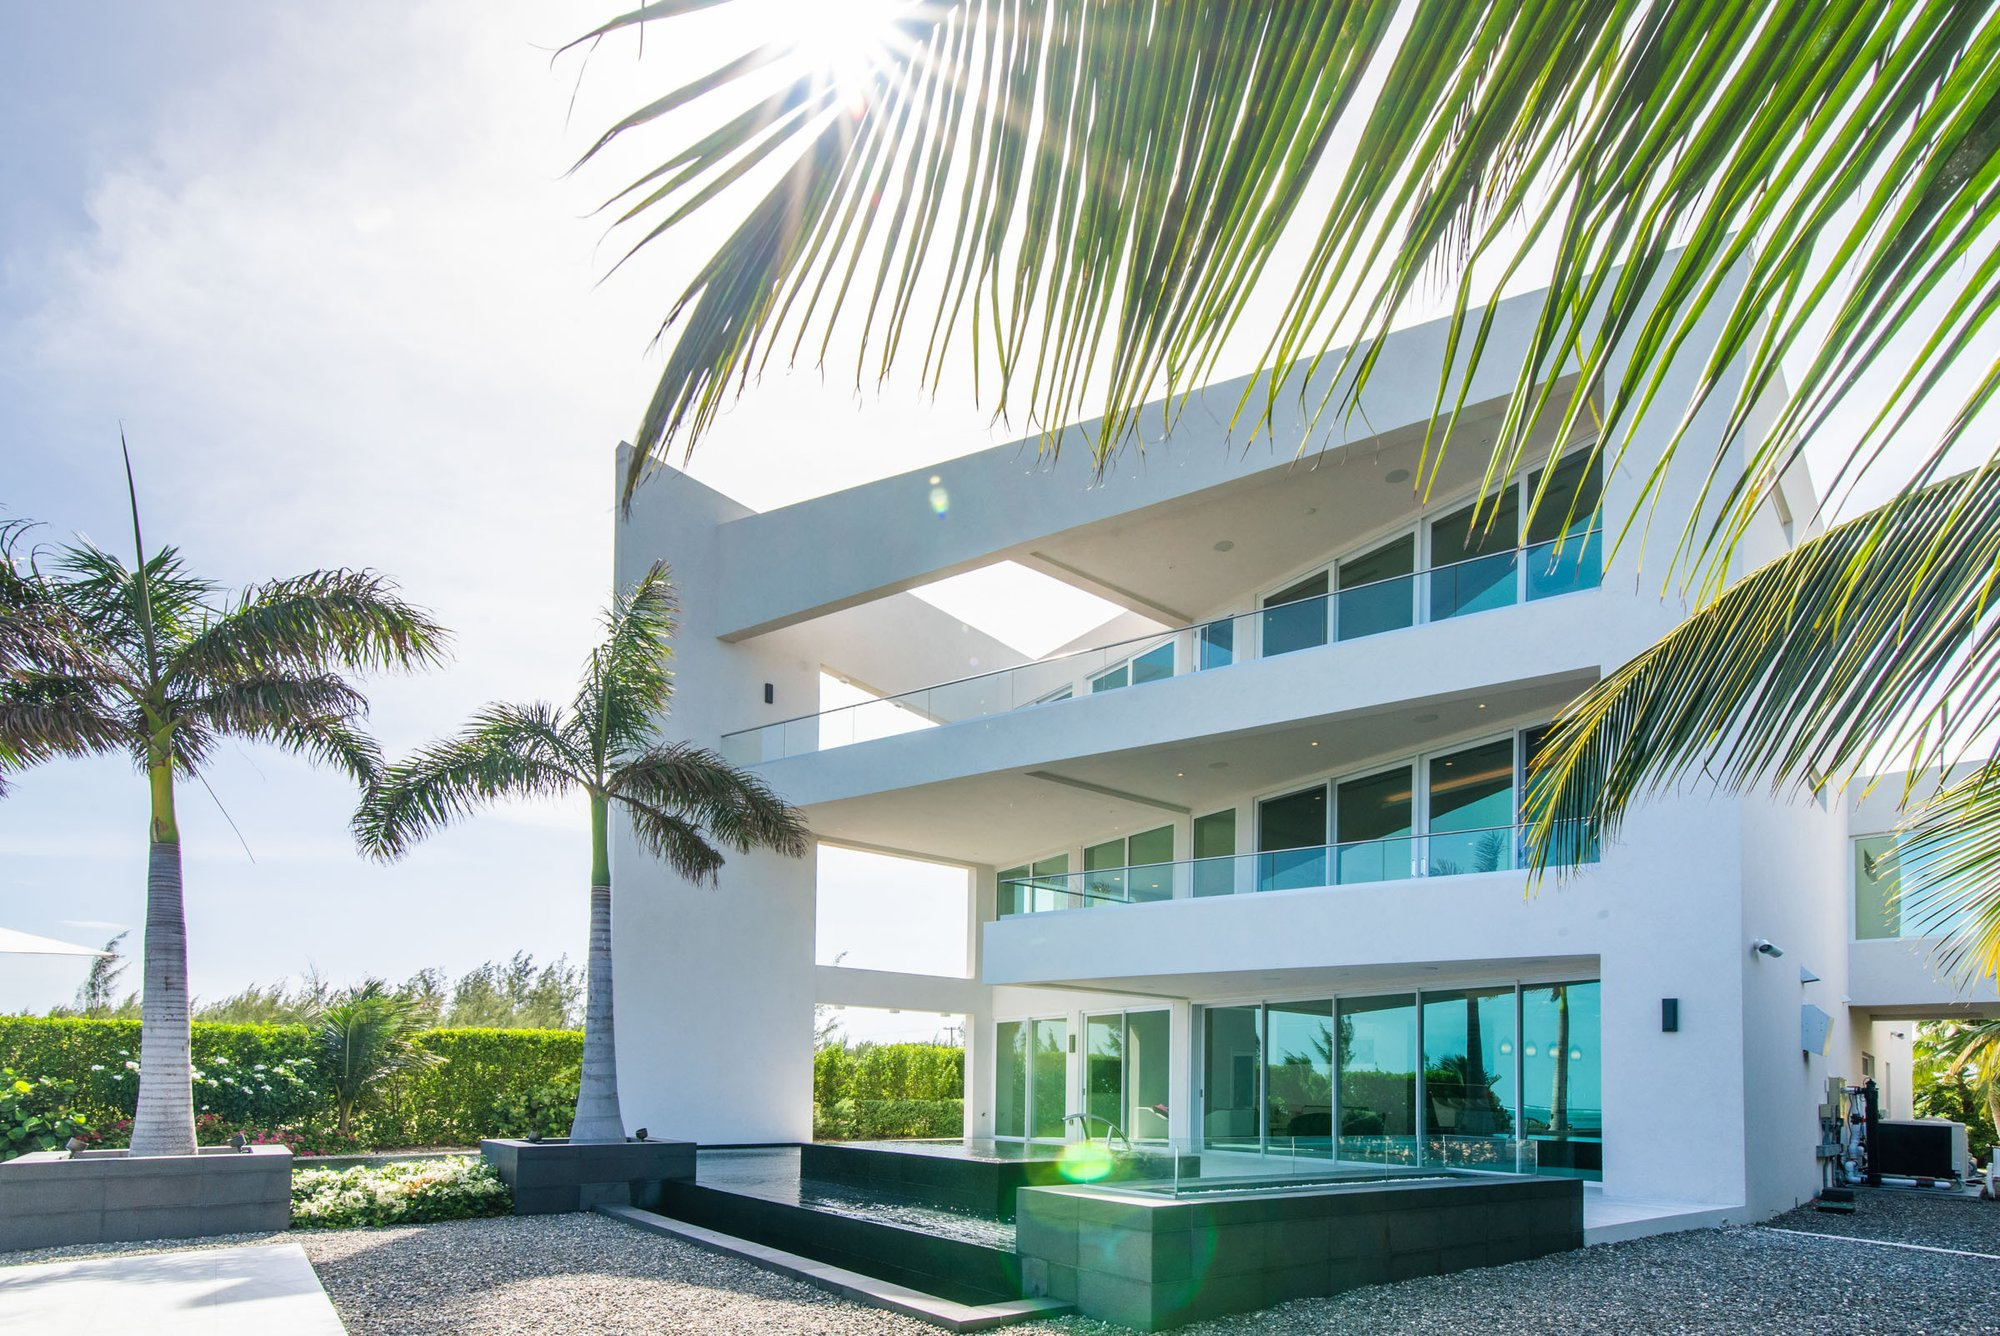 House in George Town, George Town, Cayman Islands 1 - 11568592